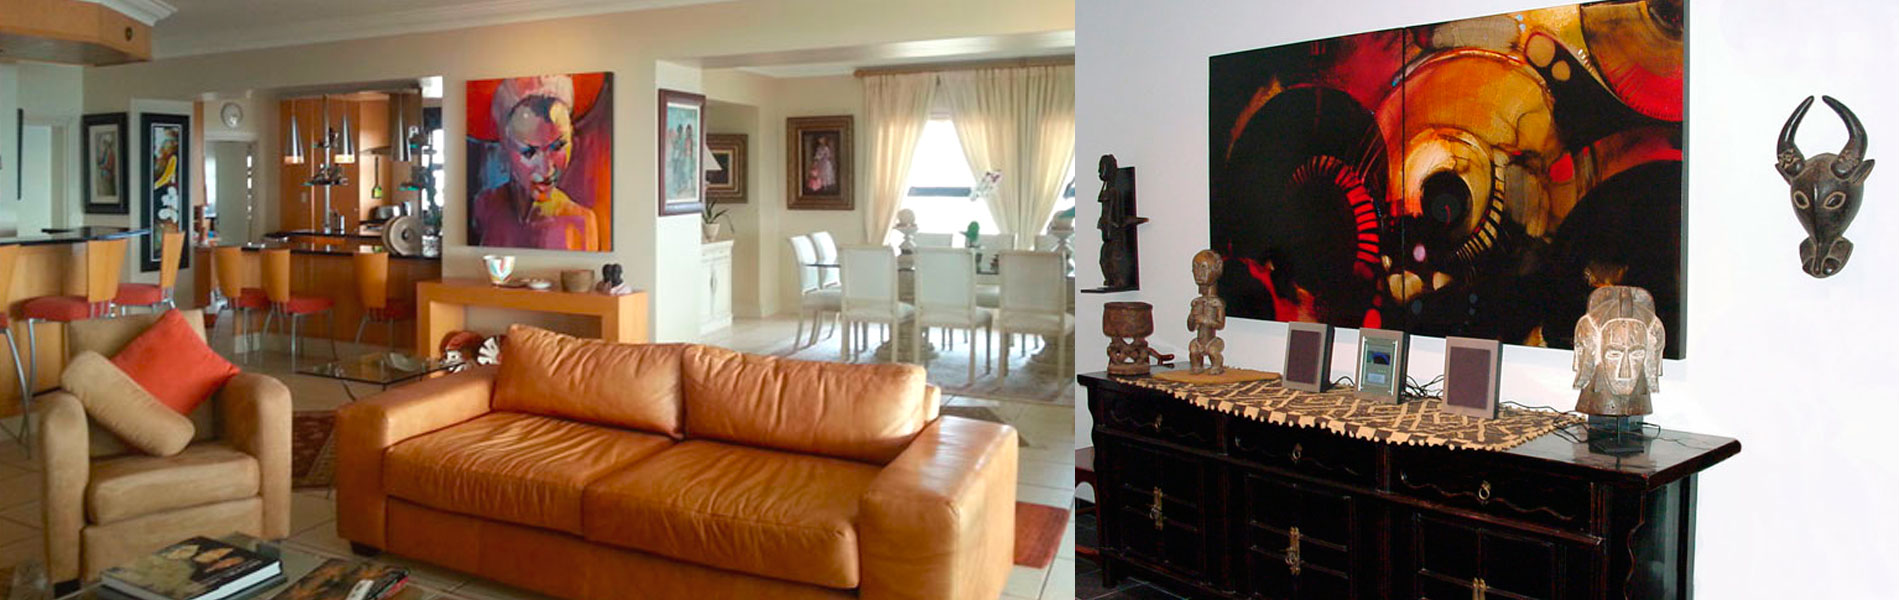 Collectors' Corner featuring images of Peter Pharoah artworks in their new homes